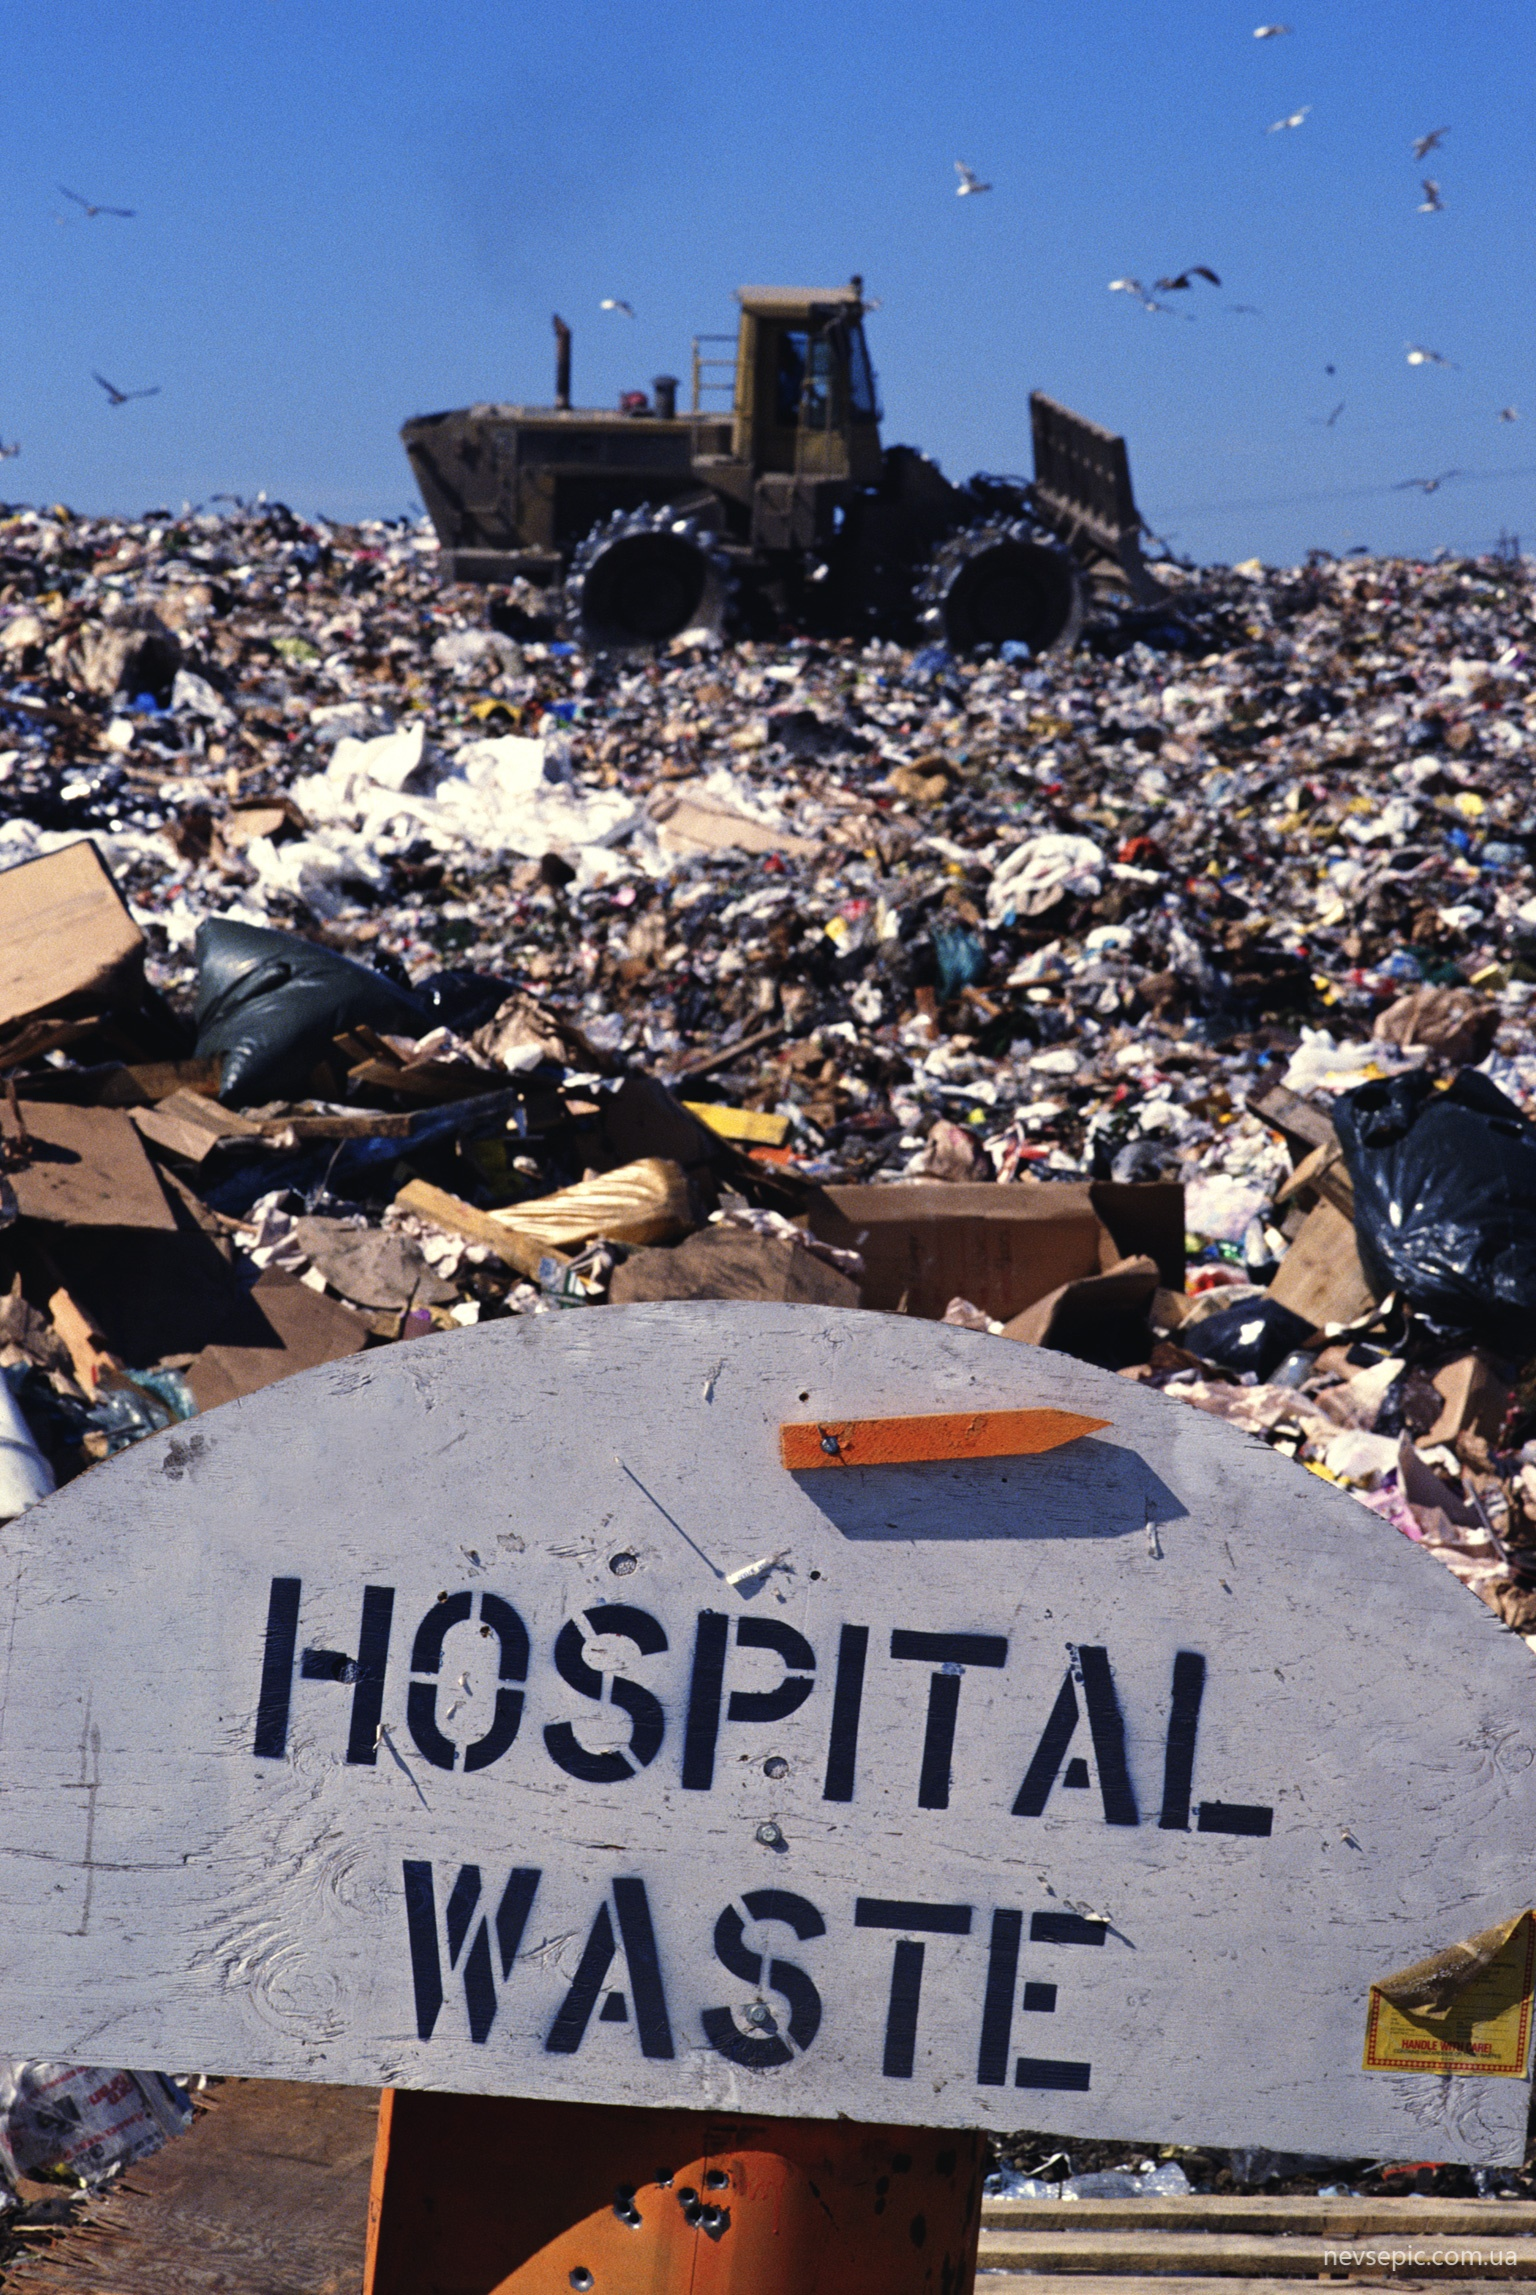 thesis on biomedical waste management in india Biomedical solid waste management in an waste (bmw), hospital waste 27,500 health care facilities in india (shah et al, 2001) waste management has become a.